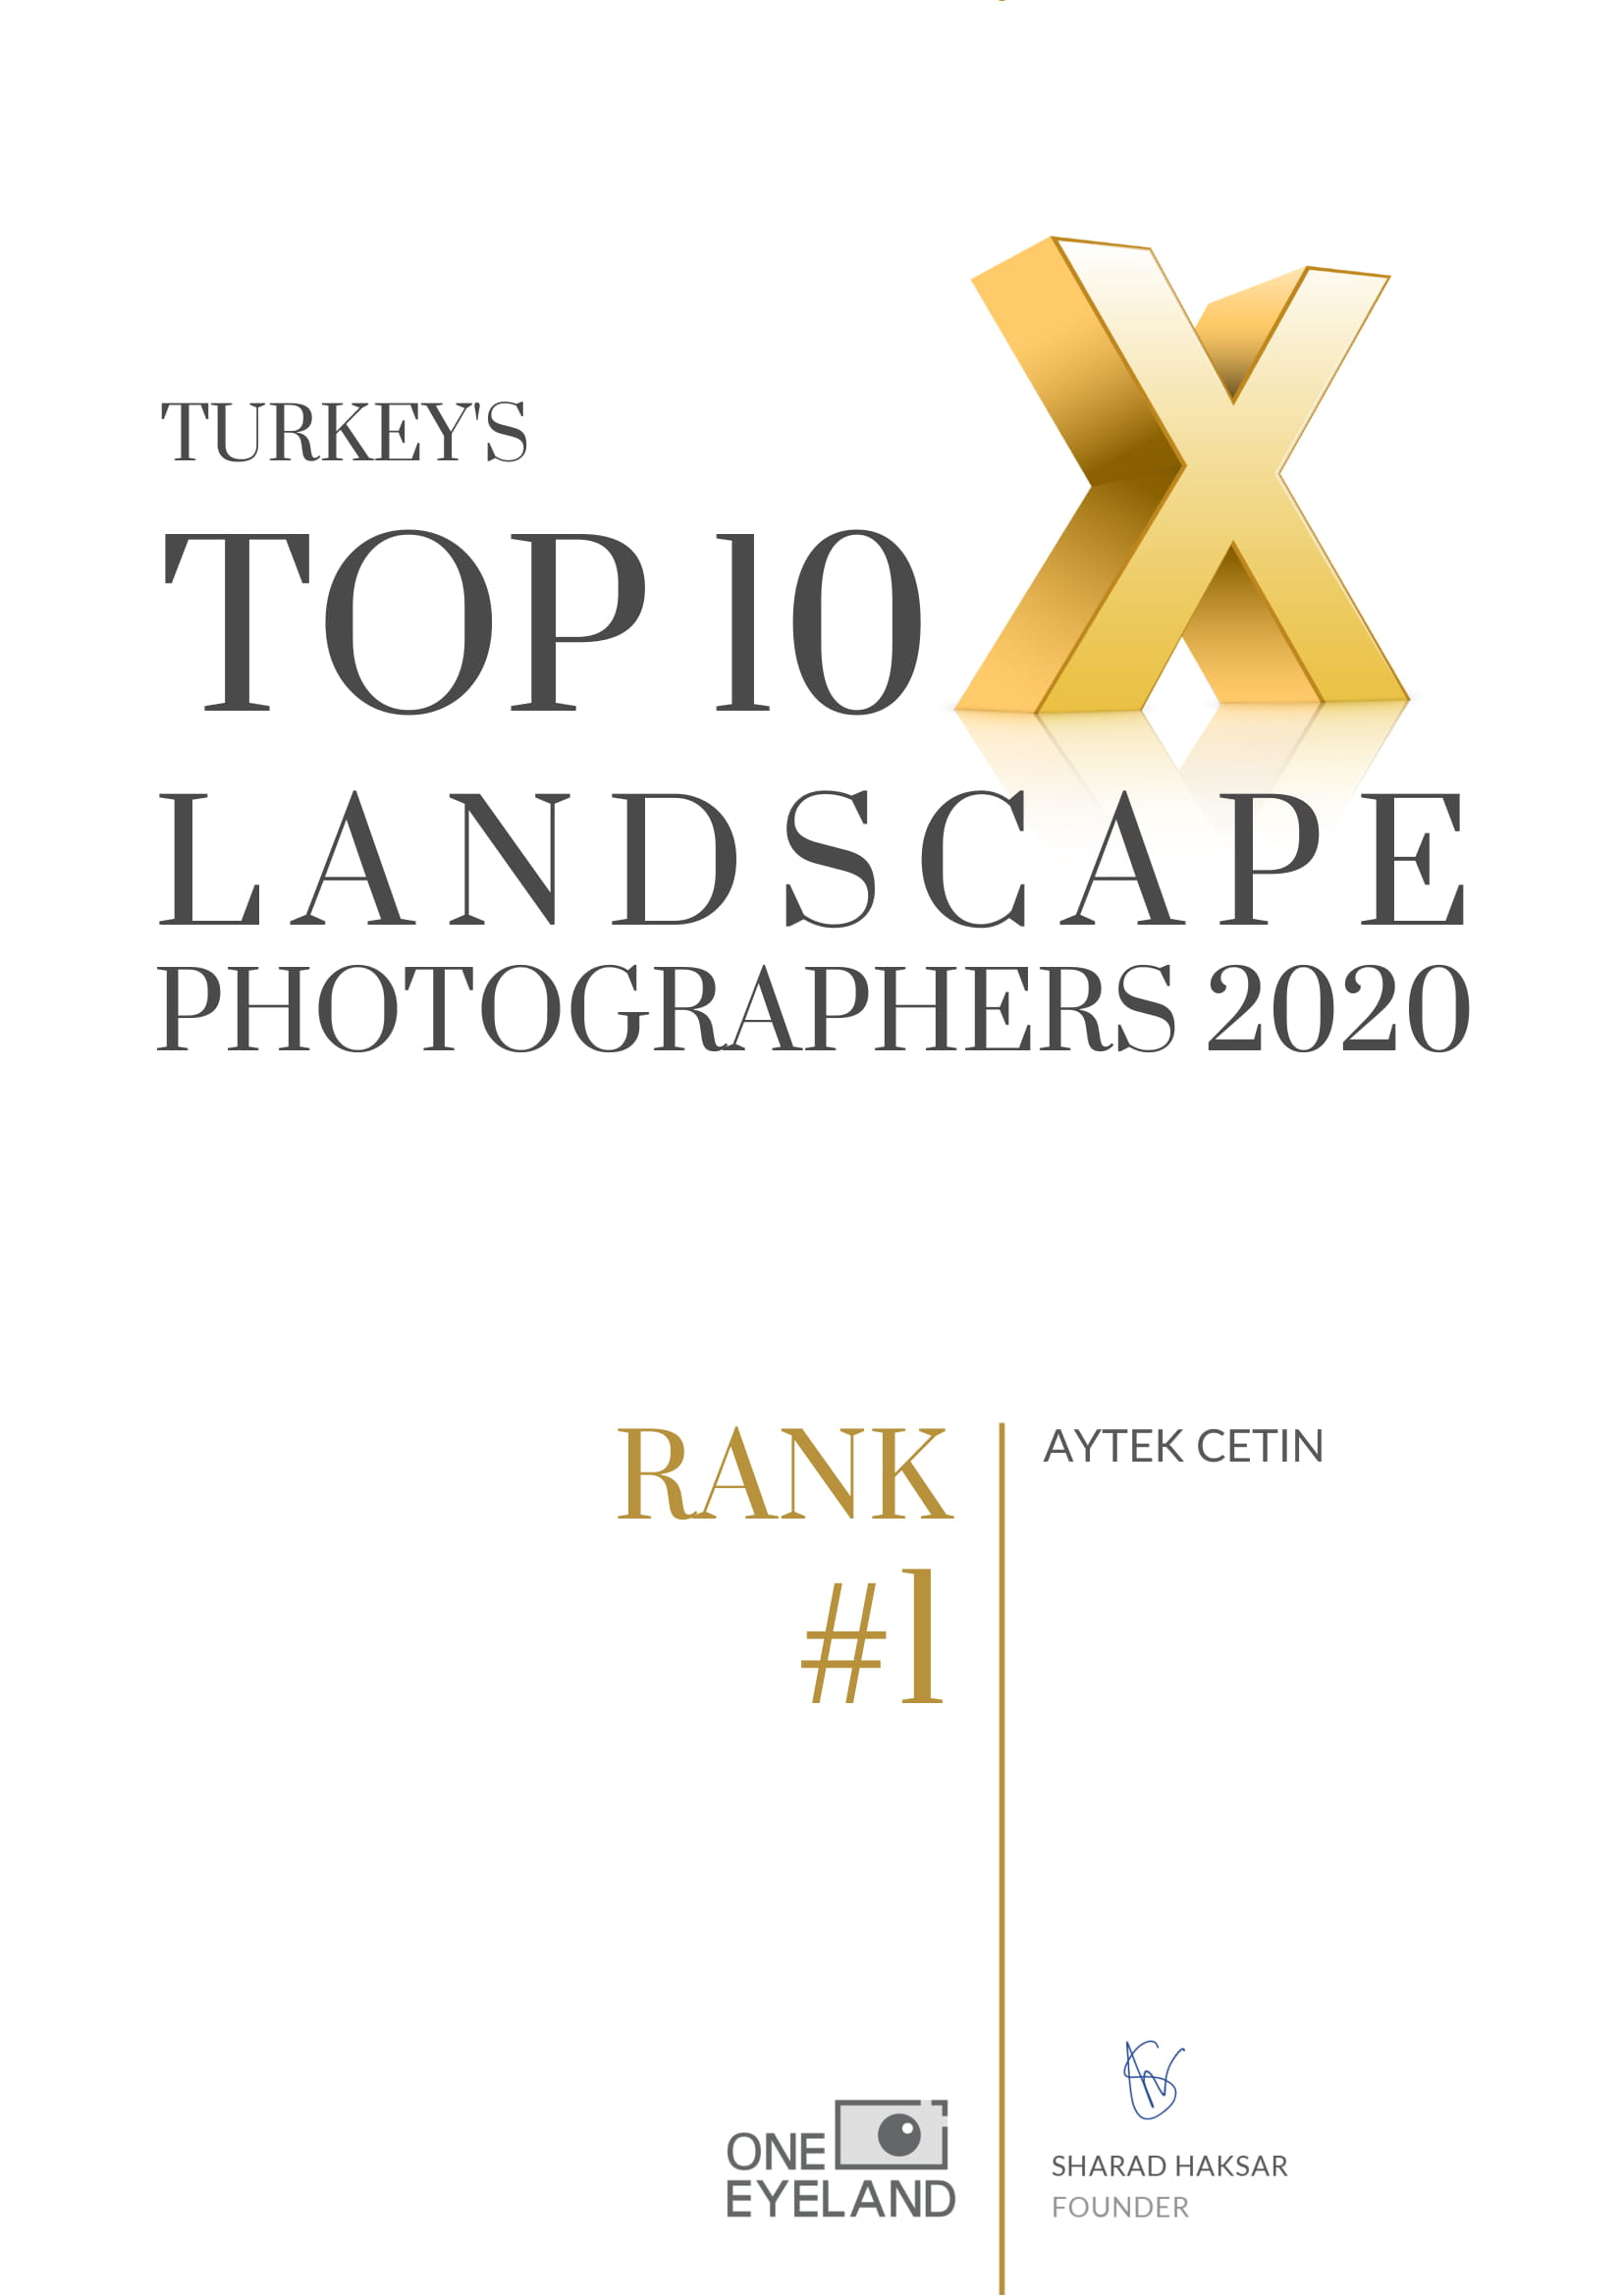 aytek-cetin-landscape-country-rank1-2020-1